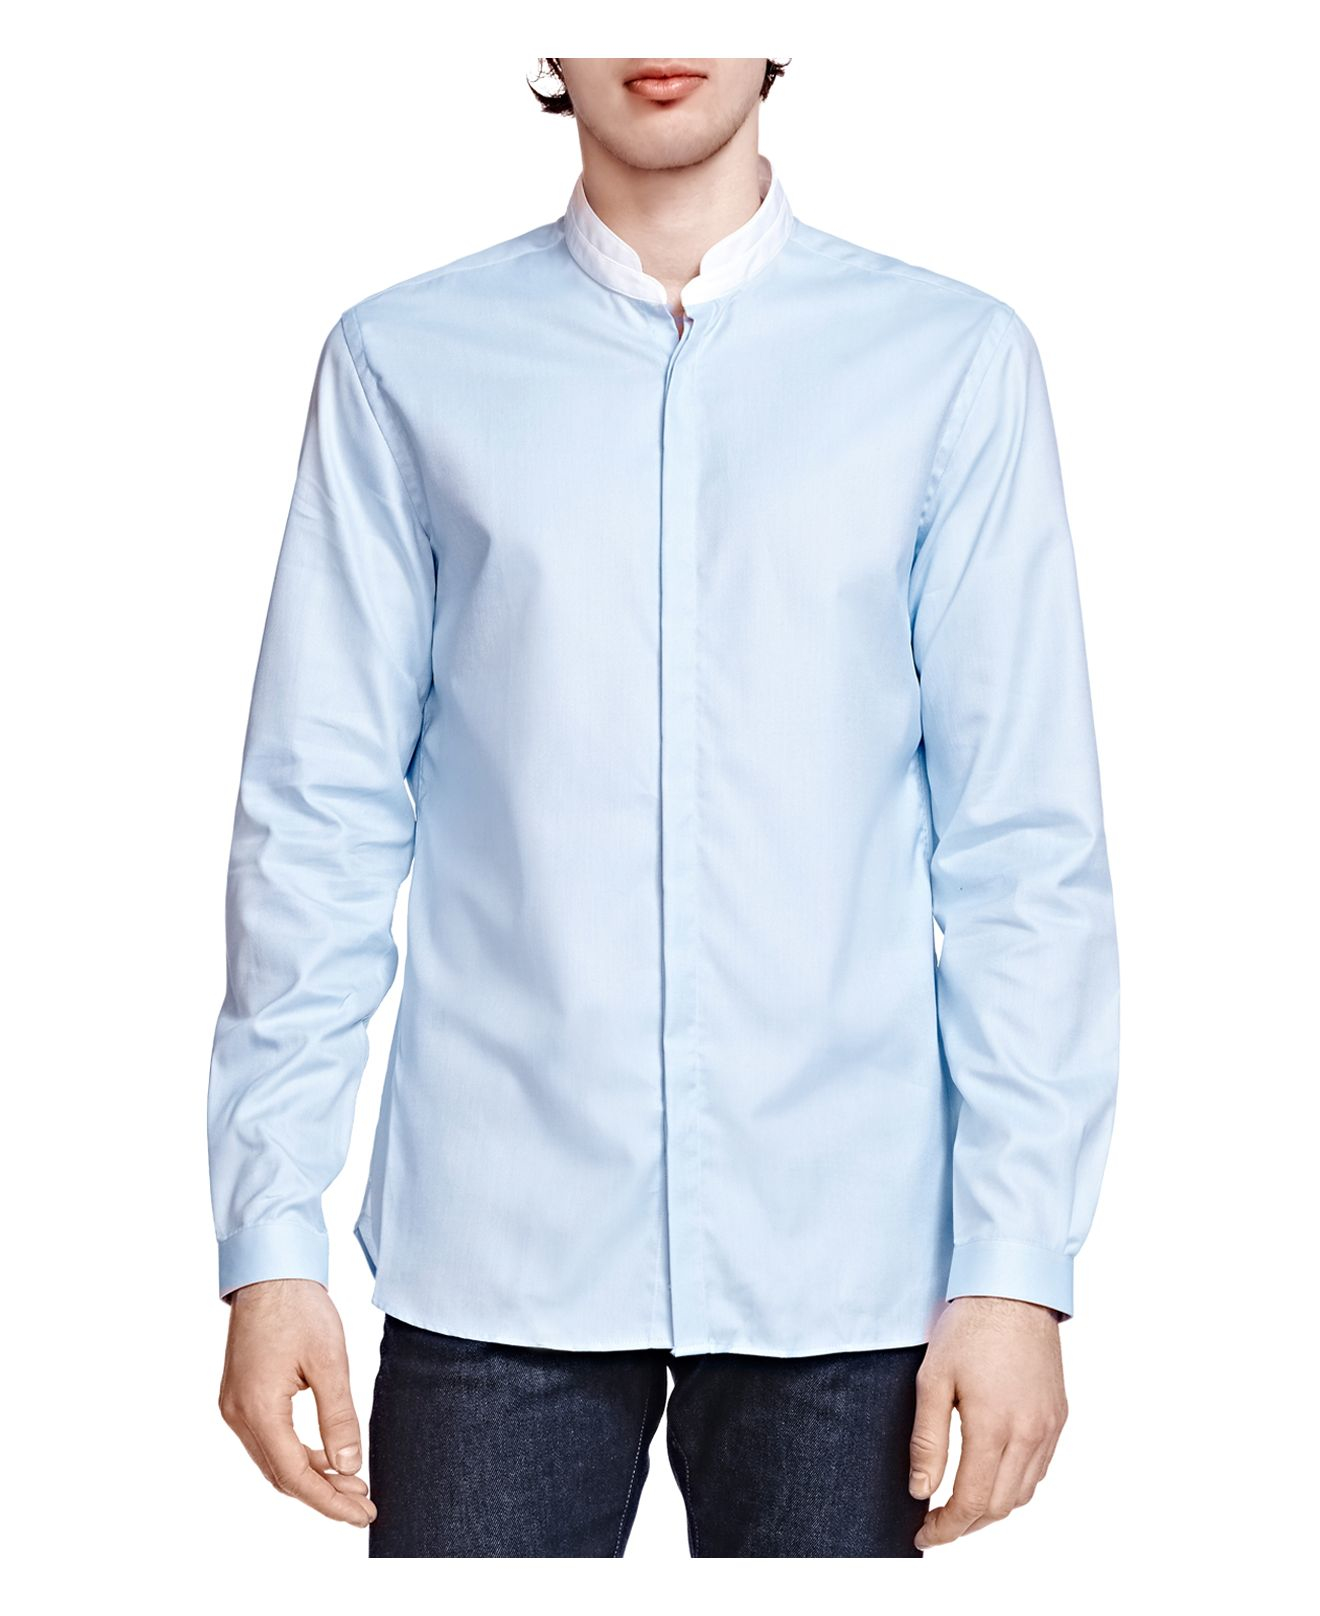 The Kooples Pique Slim Fit Button Down Shirt In Blue For